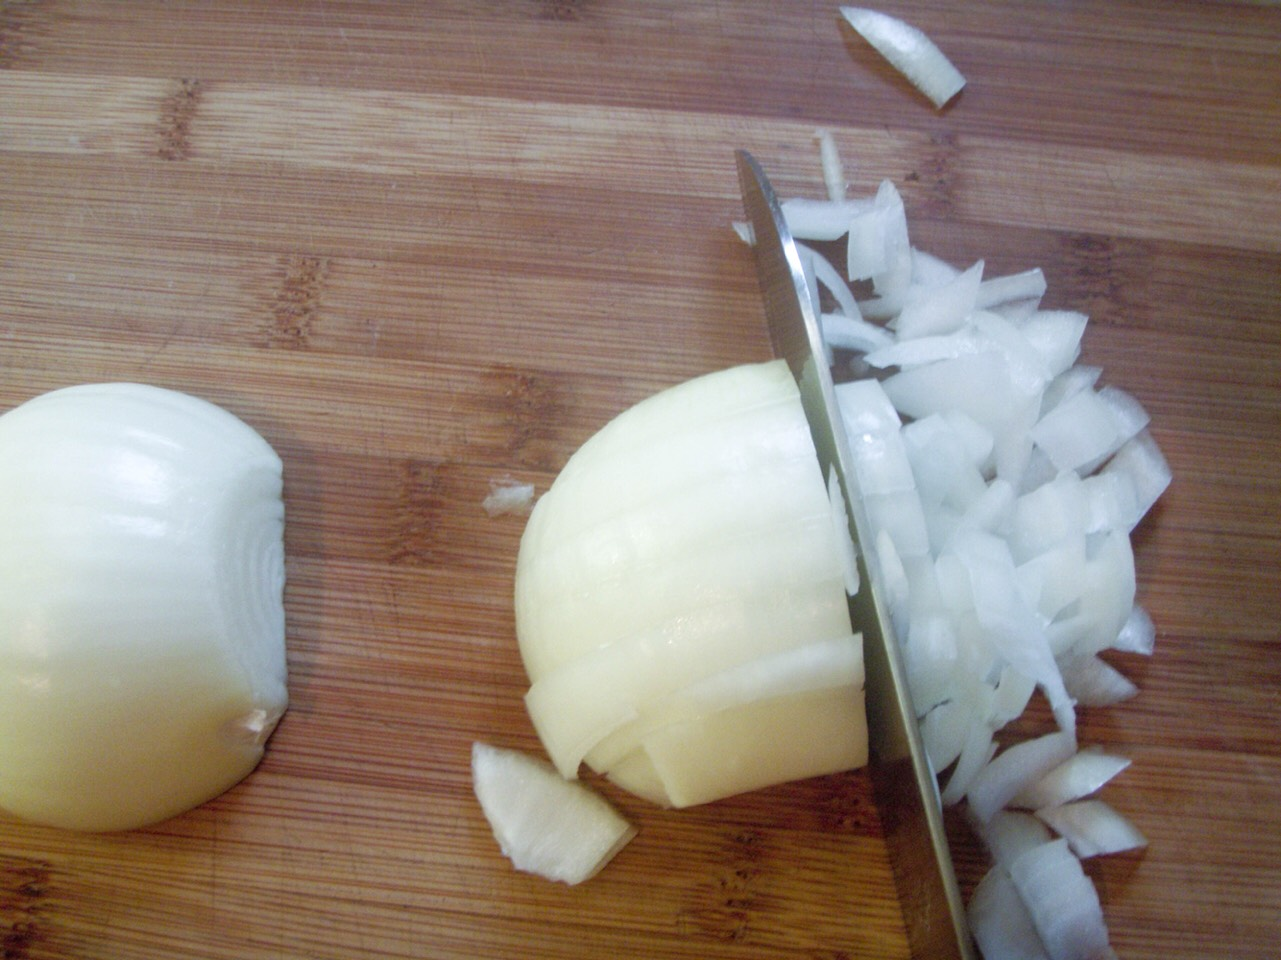 Second cut your onions up into small pieces.